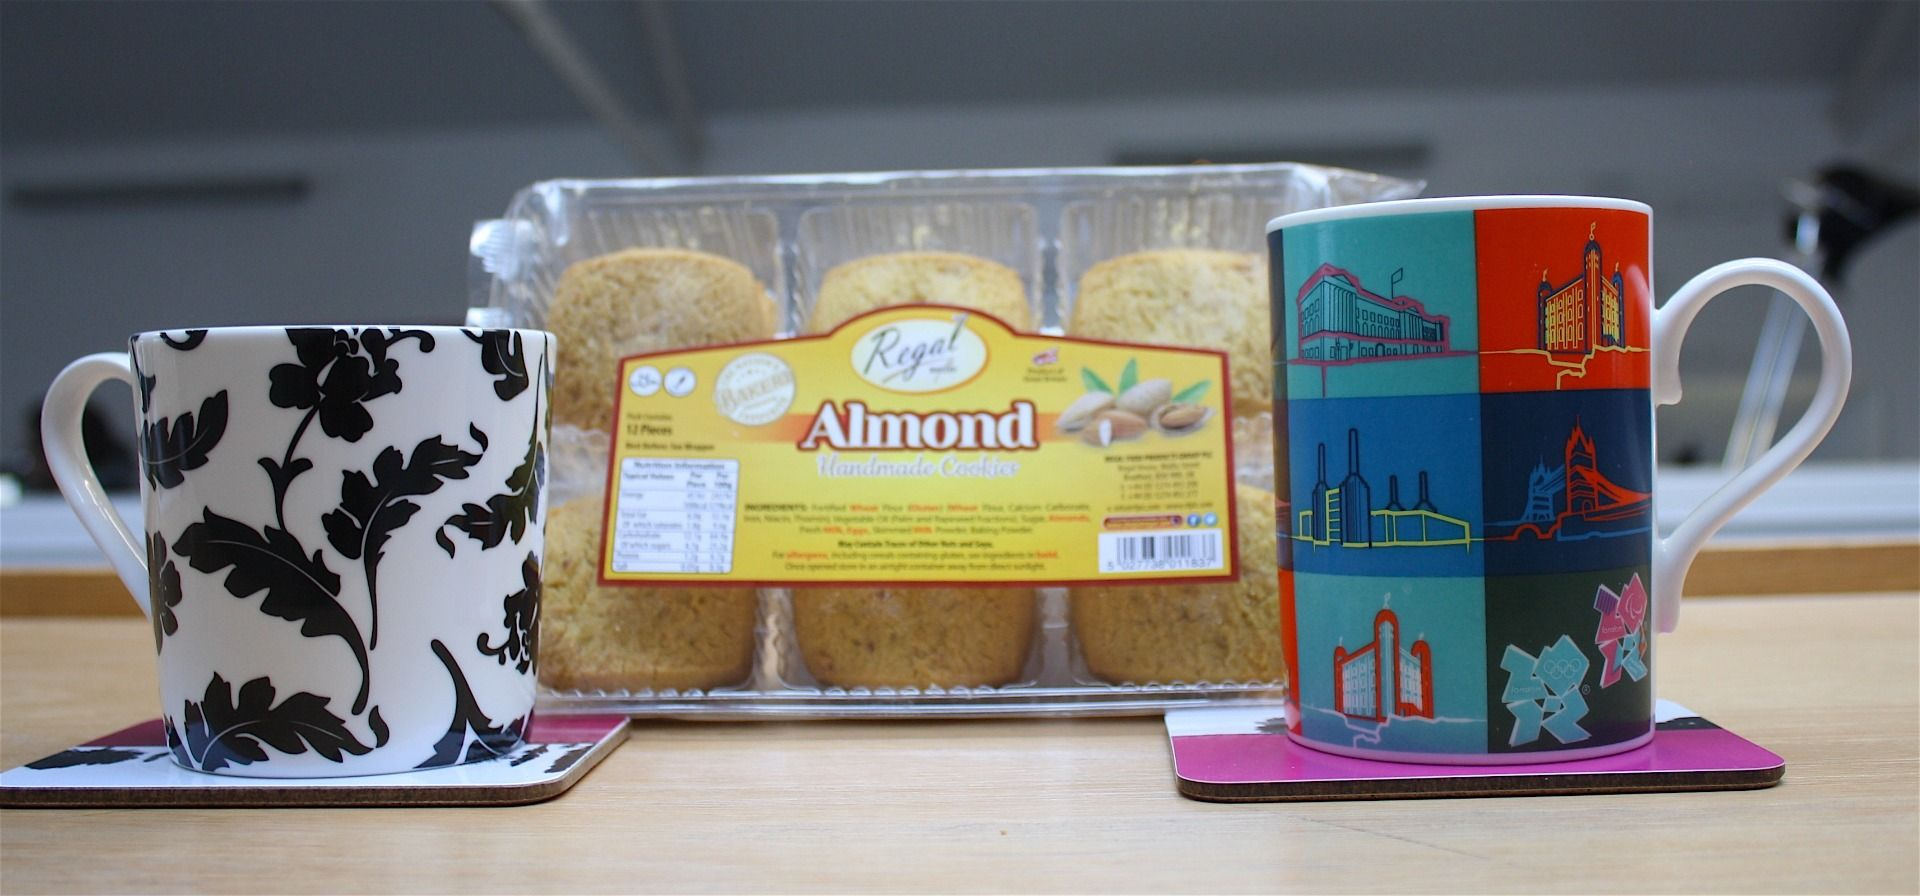 Regal Almond Cookies Dunking Challenge